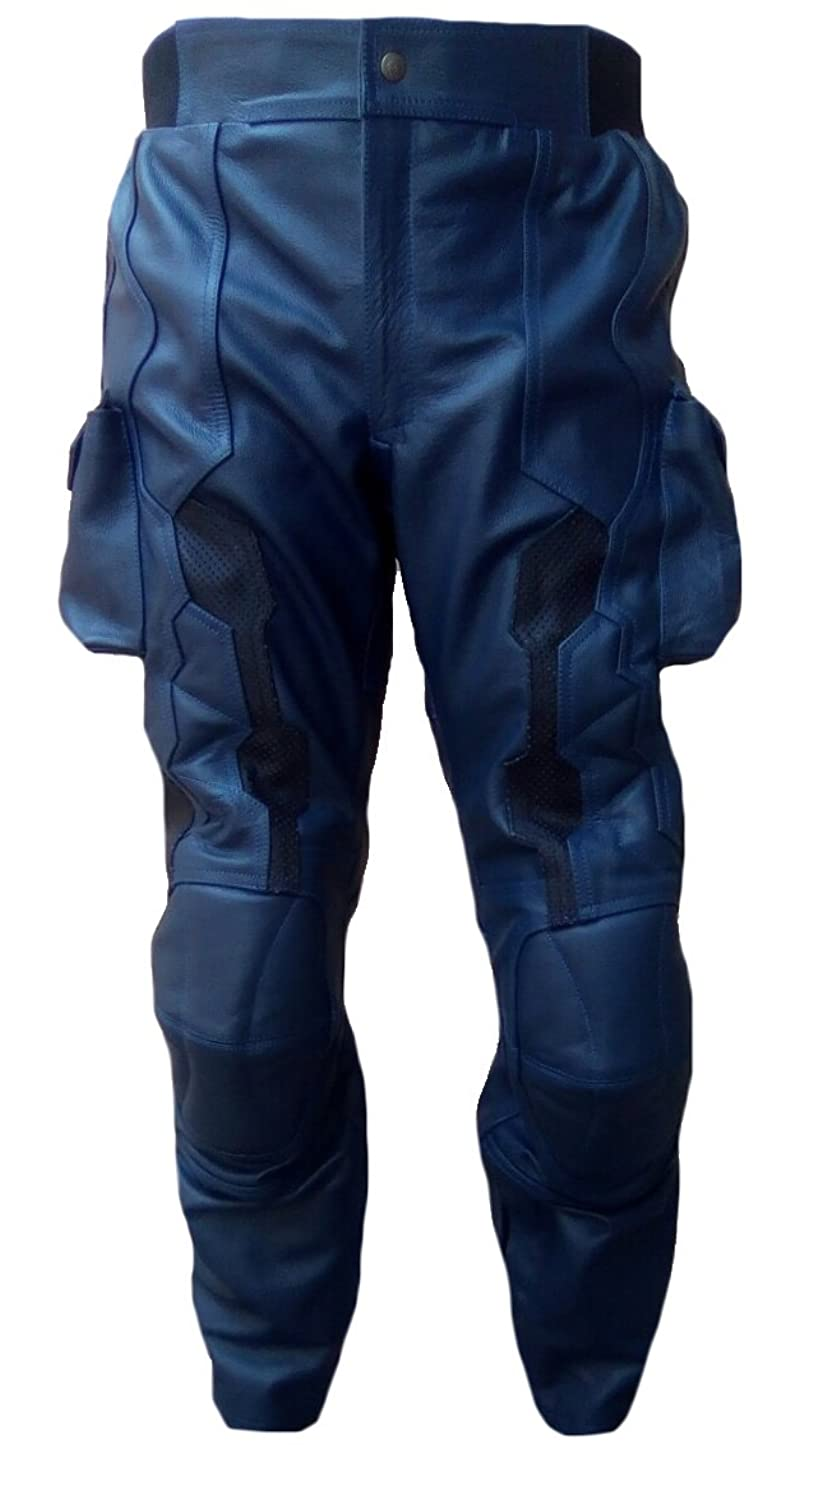 Men's Captain America Winter Soldier Real Leather Motorbike Pants - DeluxeAdultCostumes.com